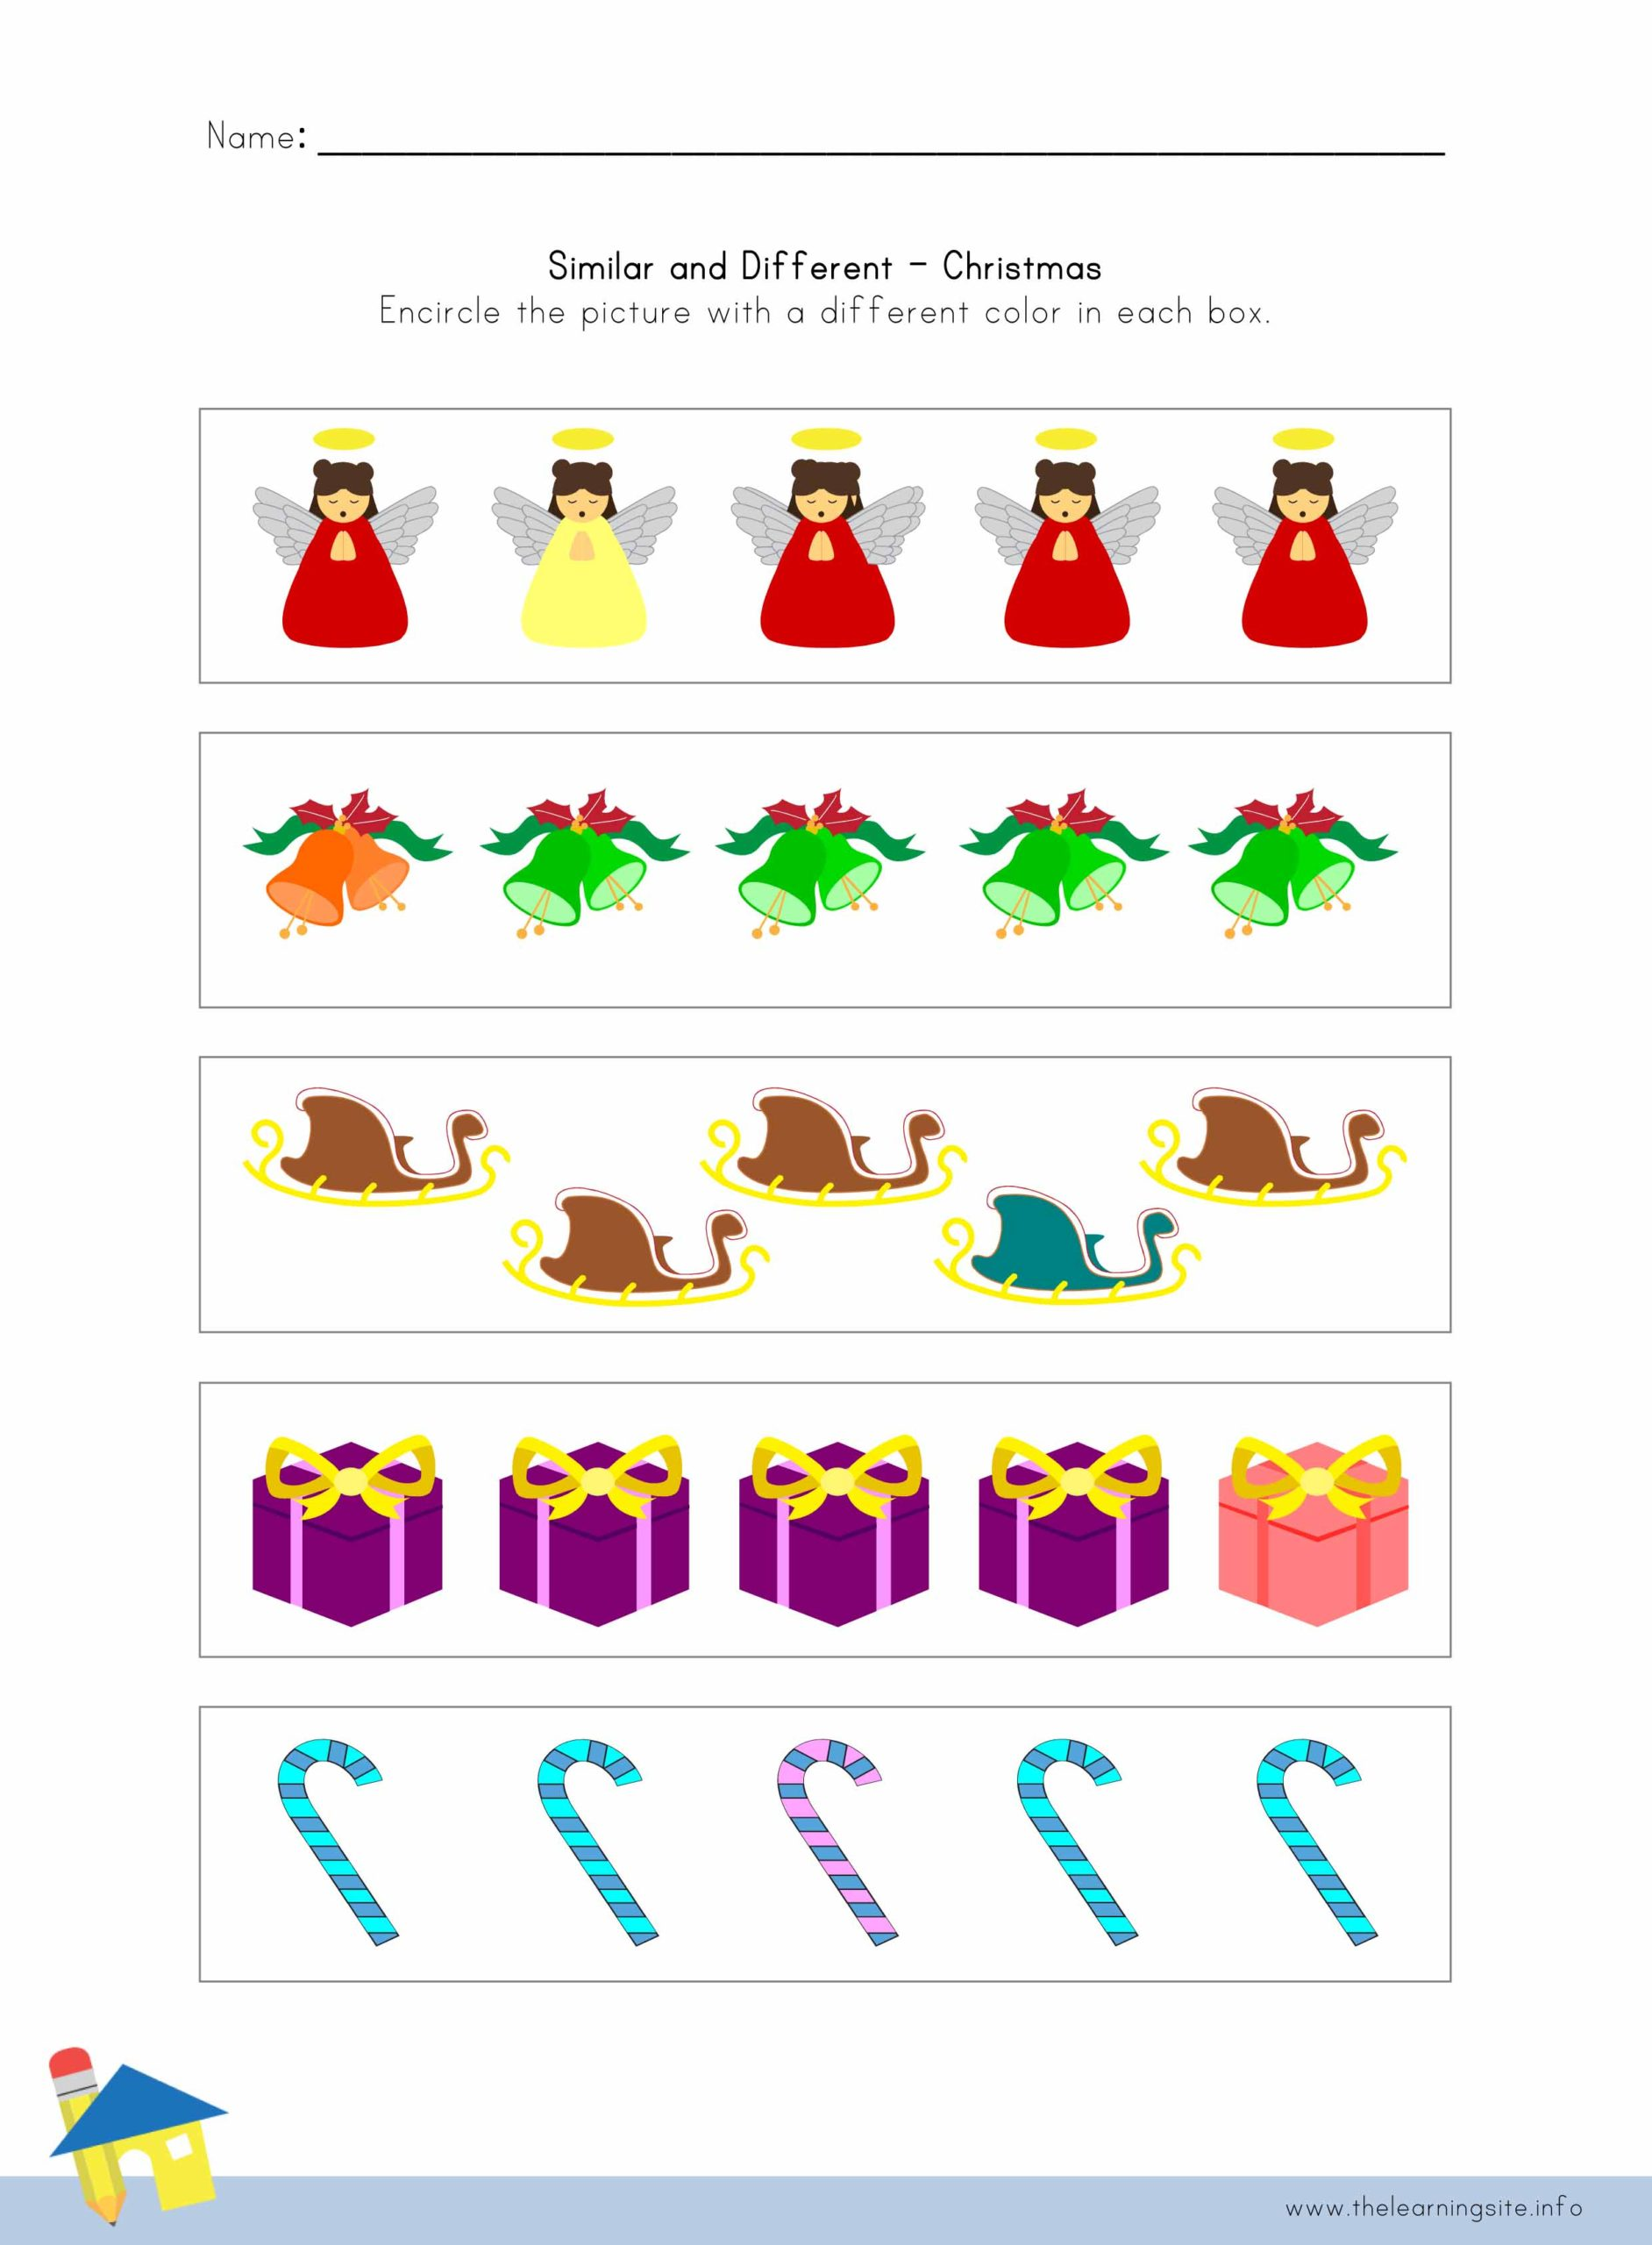 Christmas Similar And Different Worksheet 1 The Learning